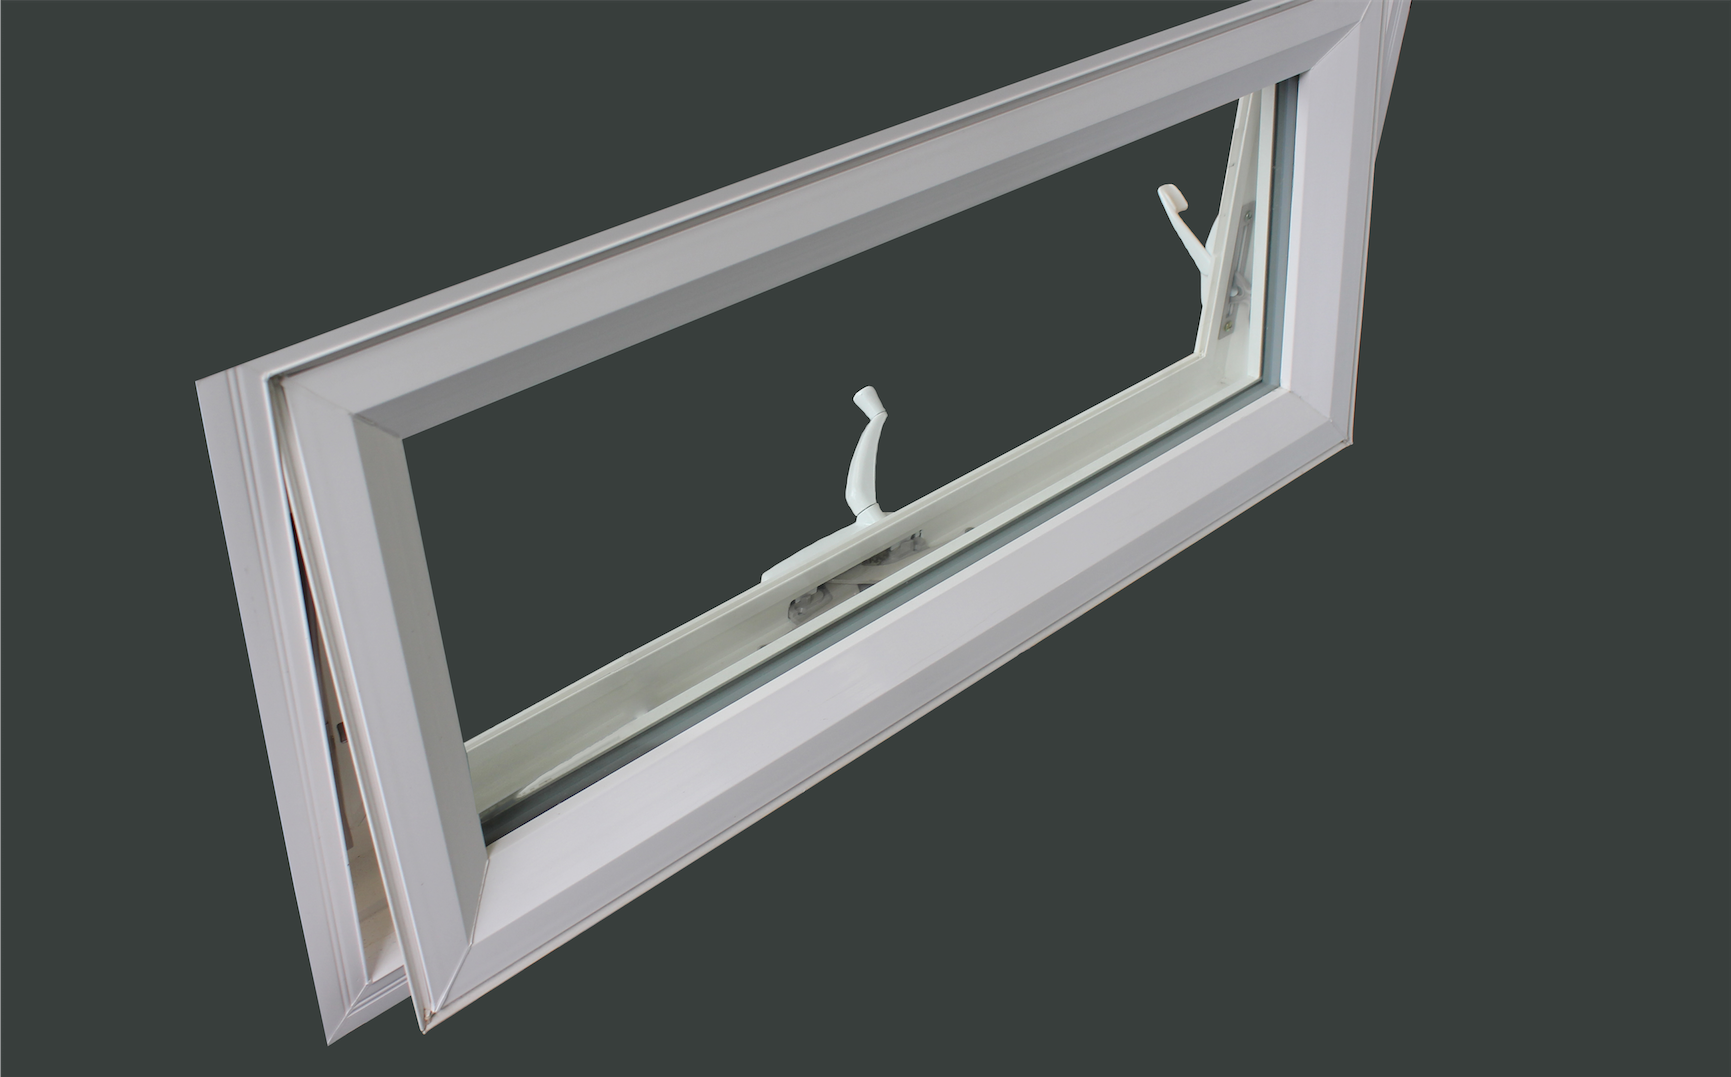 Replacement awning windows specialty wholesale supply for Wholesale replacement windows